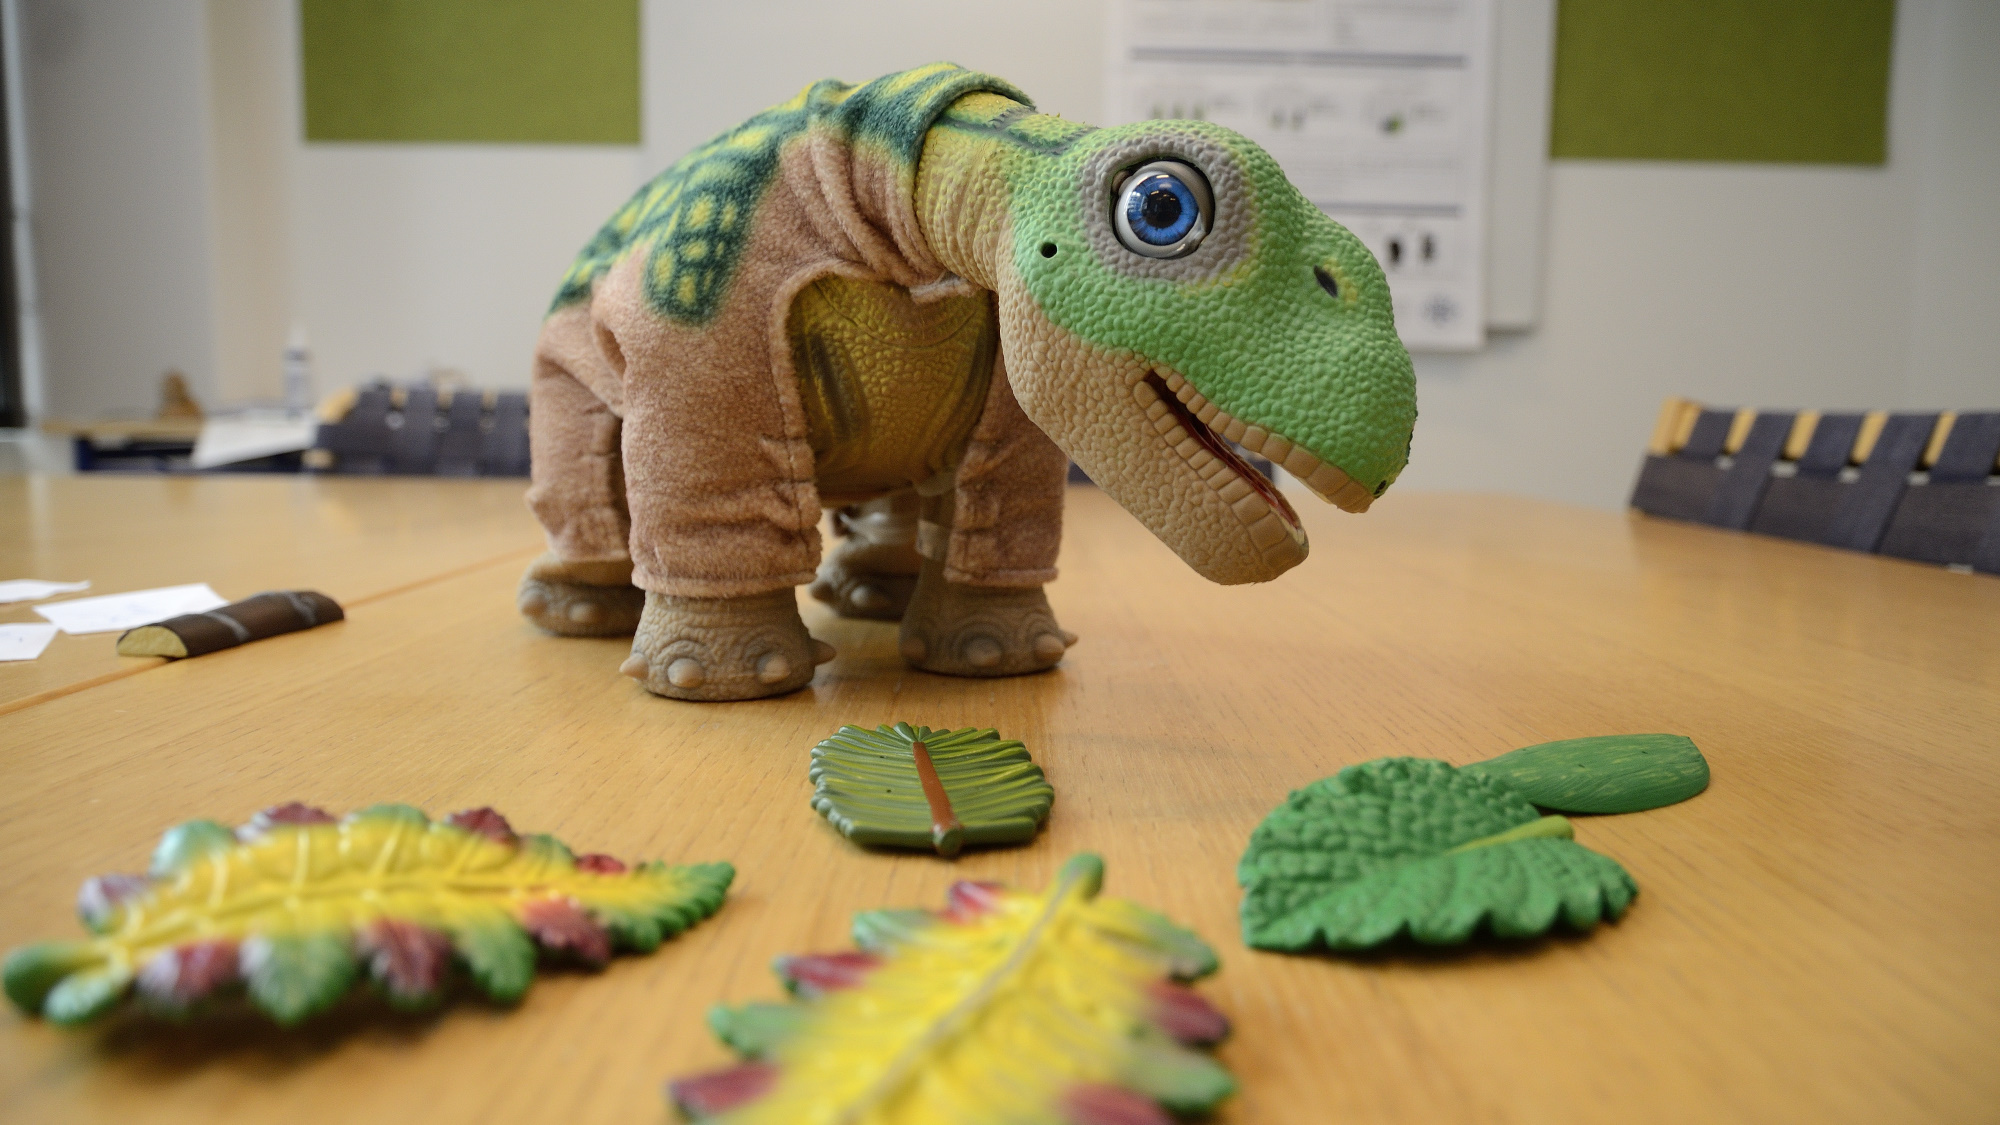 A Pleo and his food items.